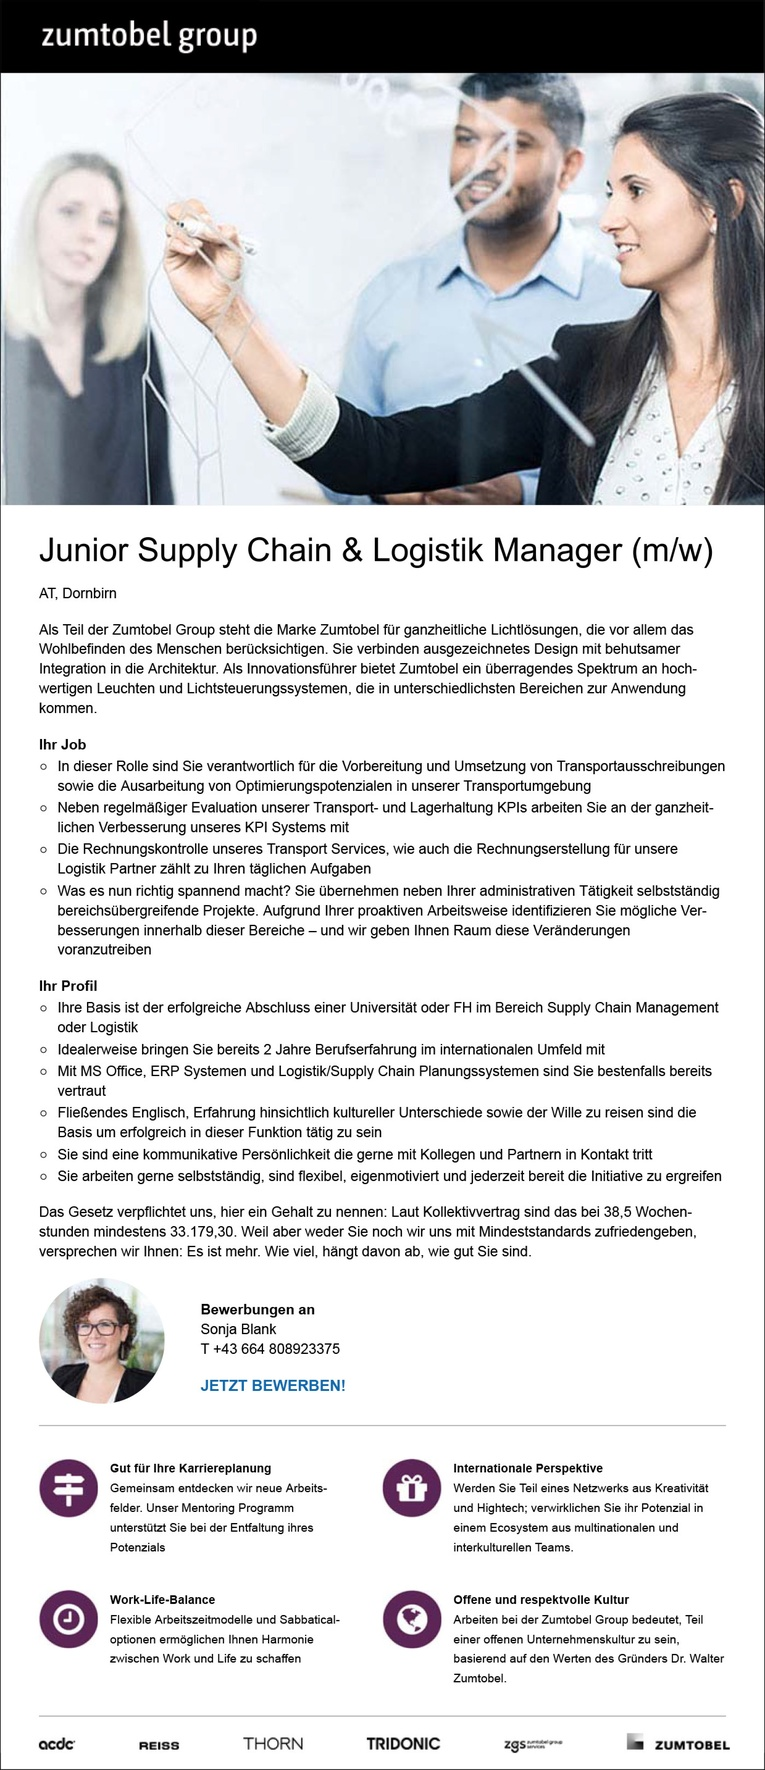 Junior Supply Chain & Logistik Manager (m/w) in Dornbirn